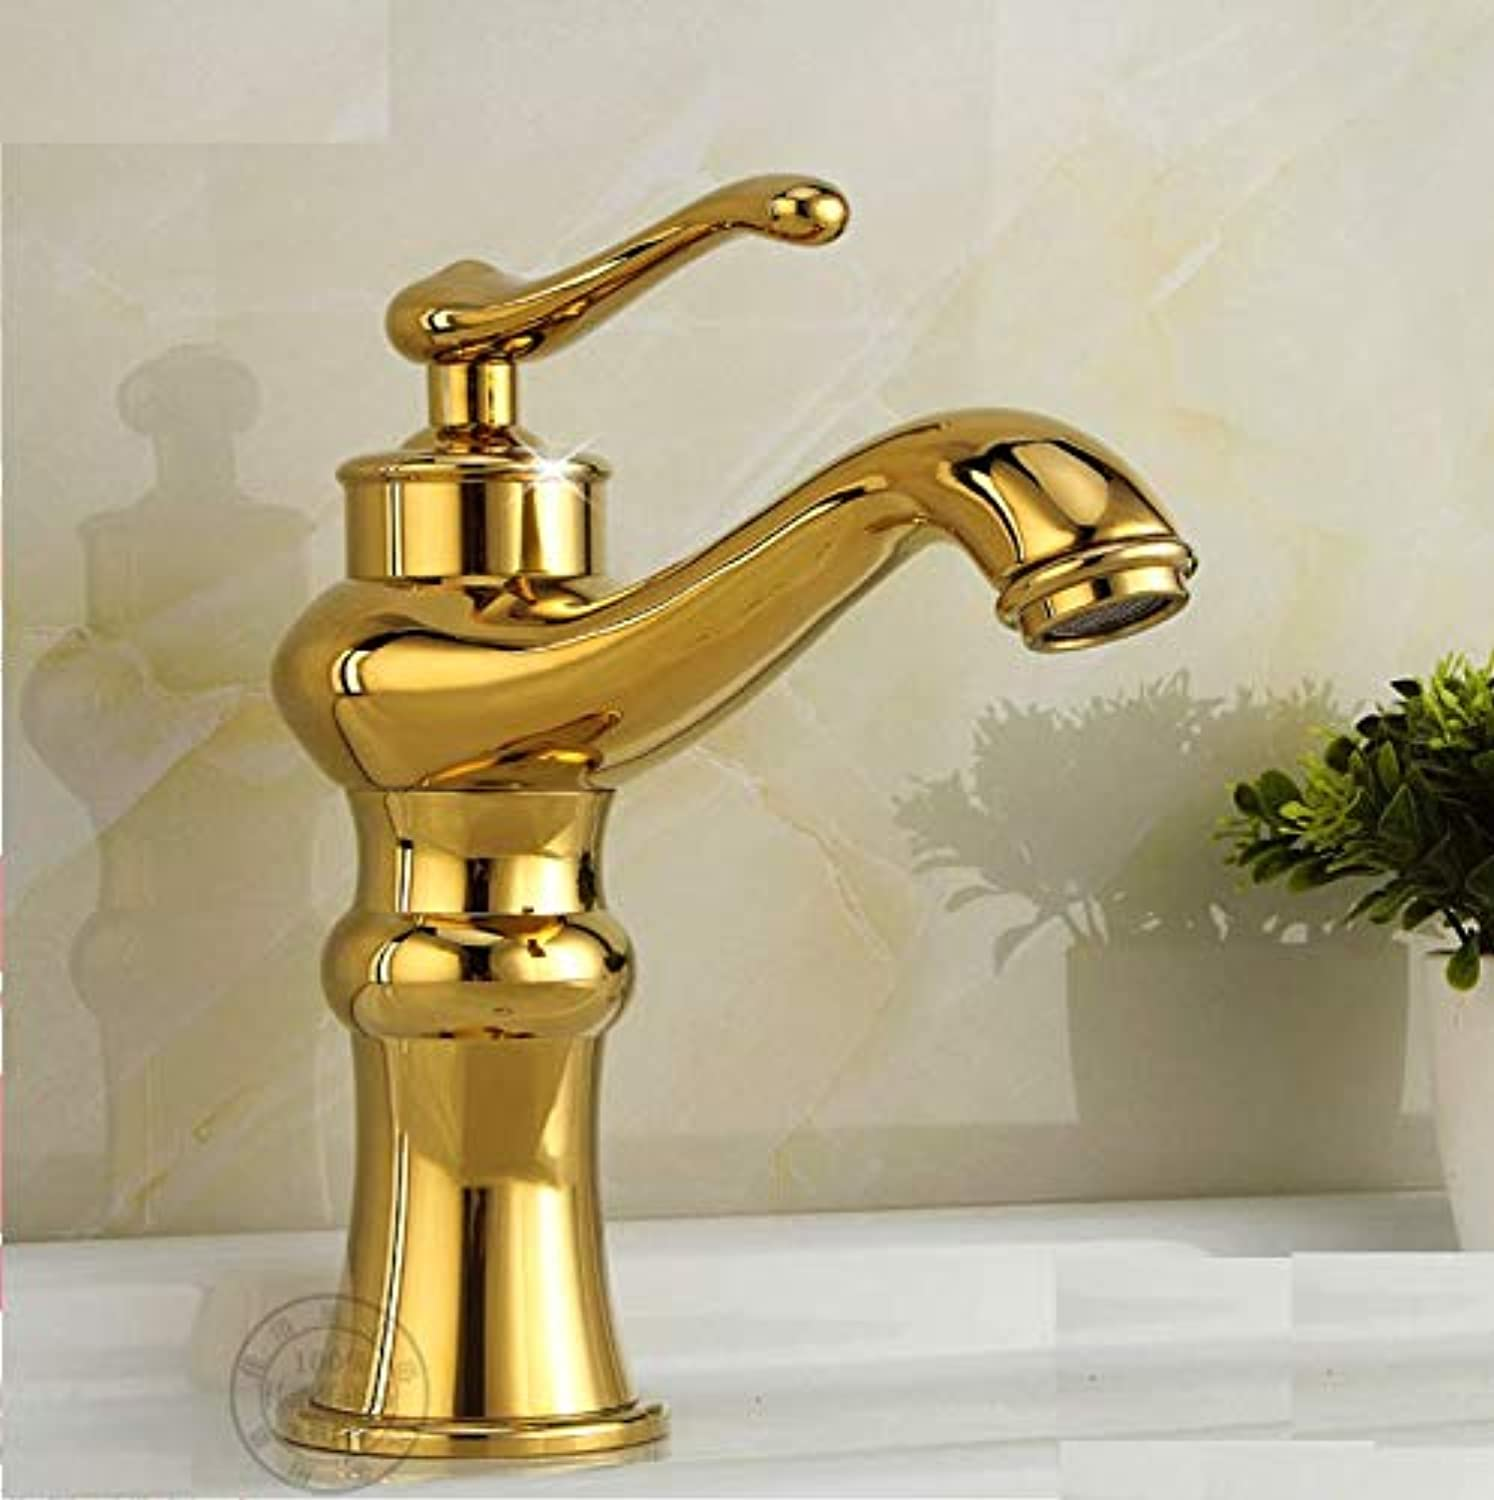 Bathroom Sink Taps Faucet gold All Copper Antique Faucet Hot and Cold Basin Faucet???Faucet Copper